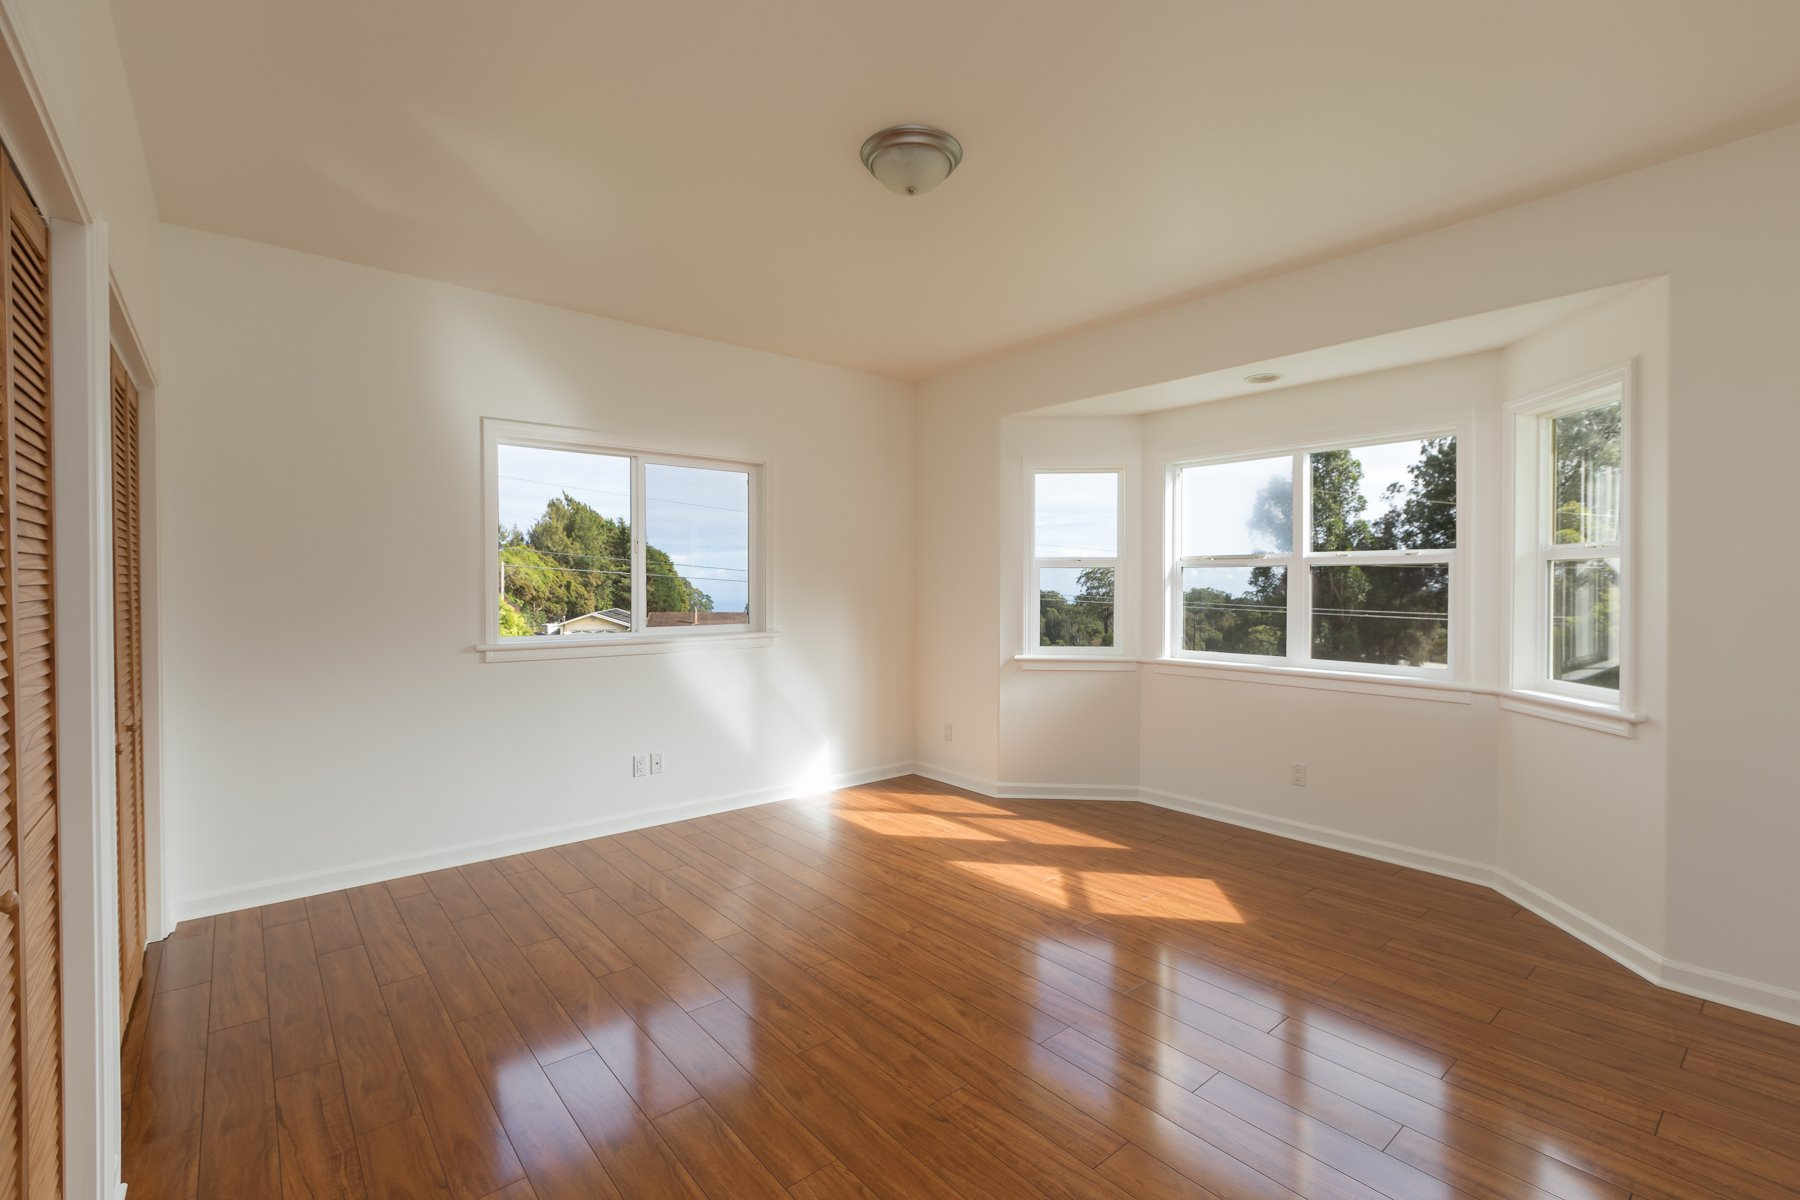 This is the second bedroom of 3 in each house. Lots of windows allow for natural light.